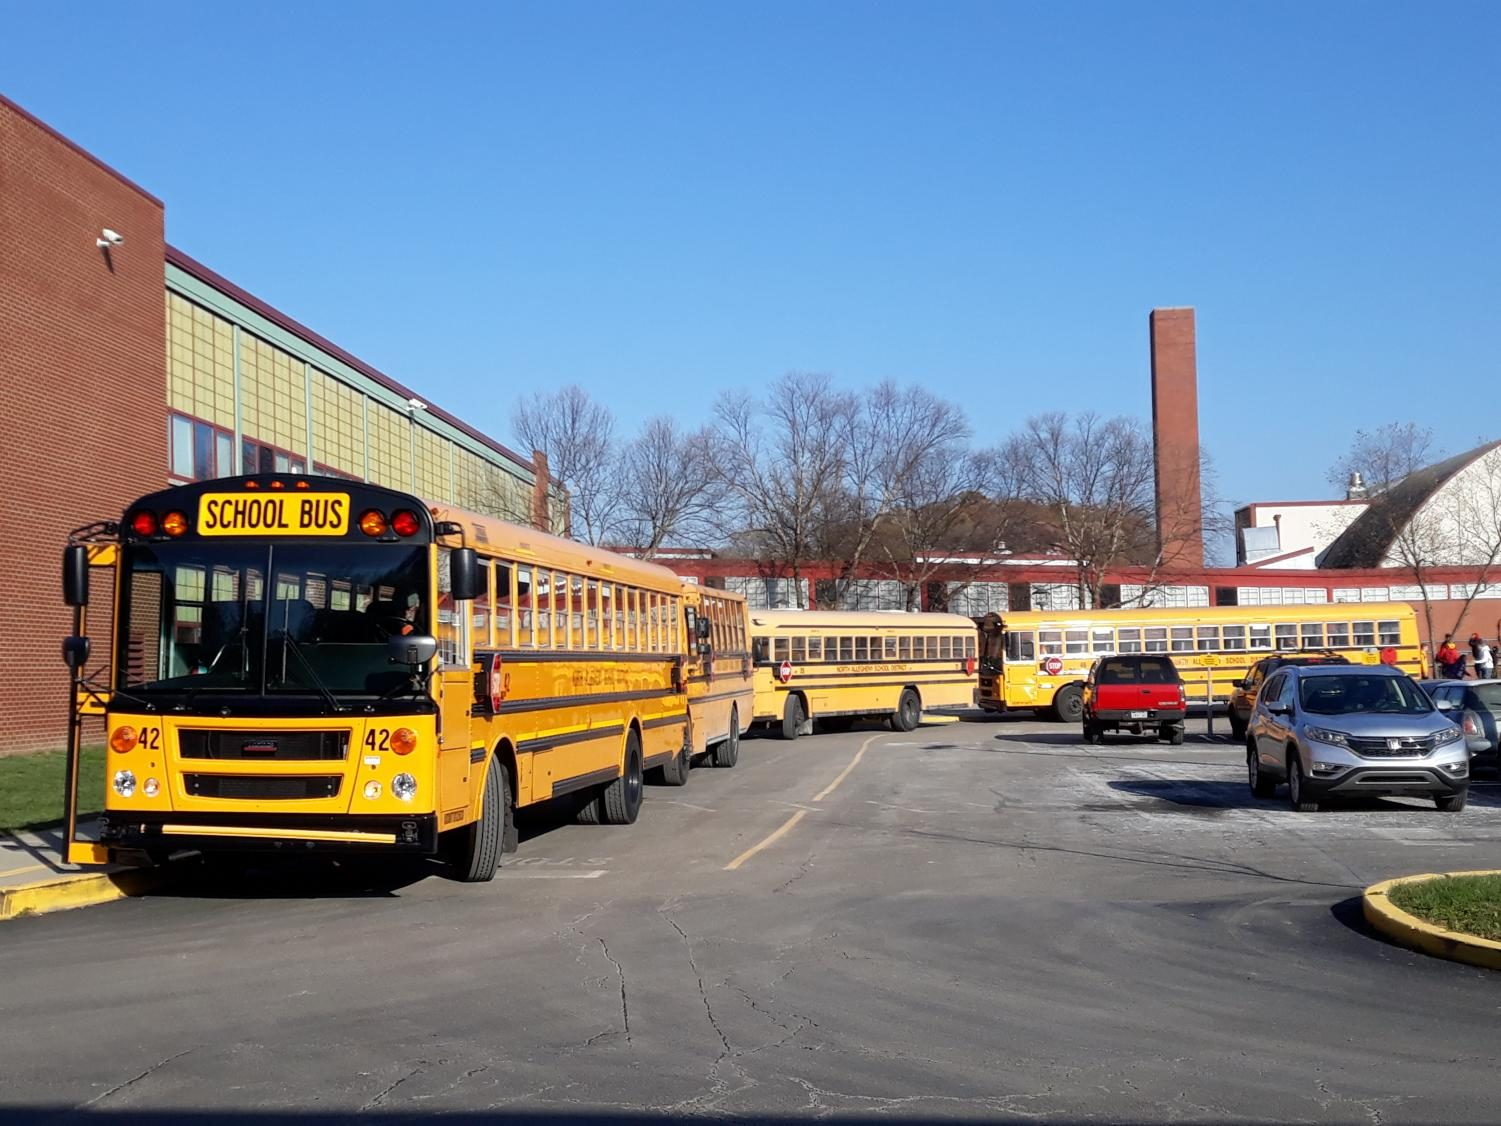 A large number of bus drivers is required  for the sheer number of school buses that service North Allegheny every day.